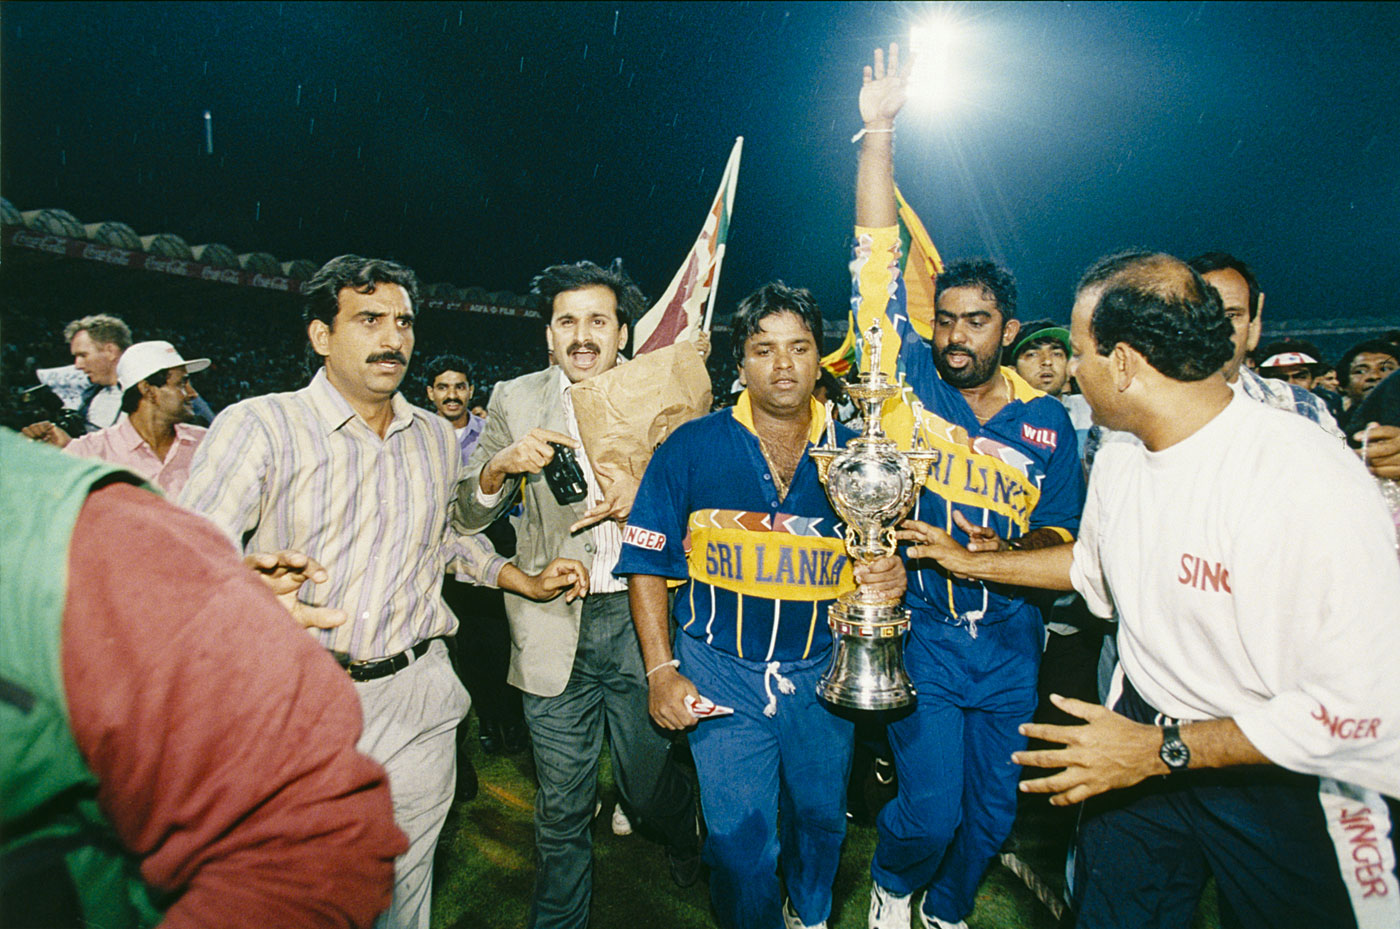 One night in Lahore: the Sri Lankans played in front of a